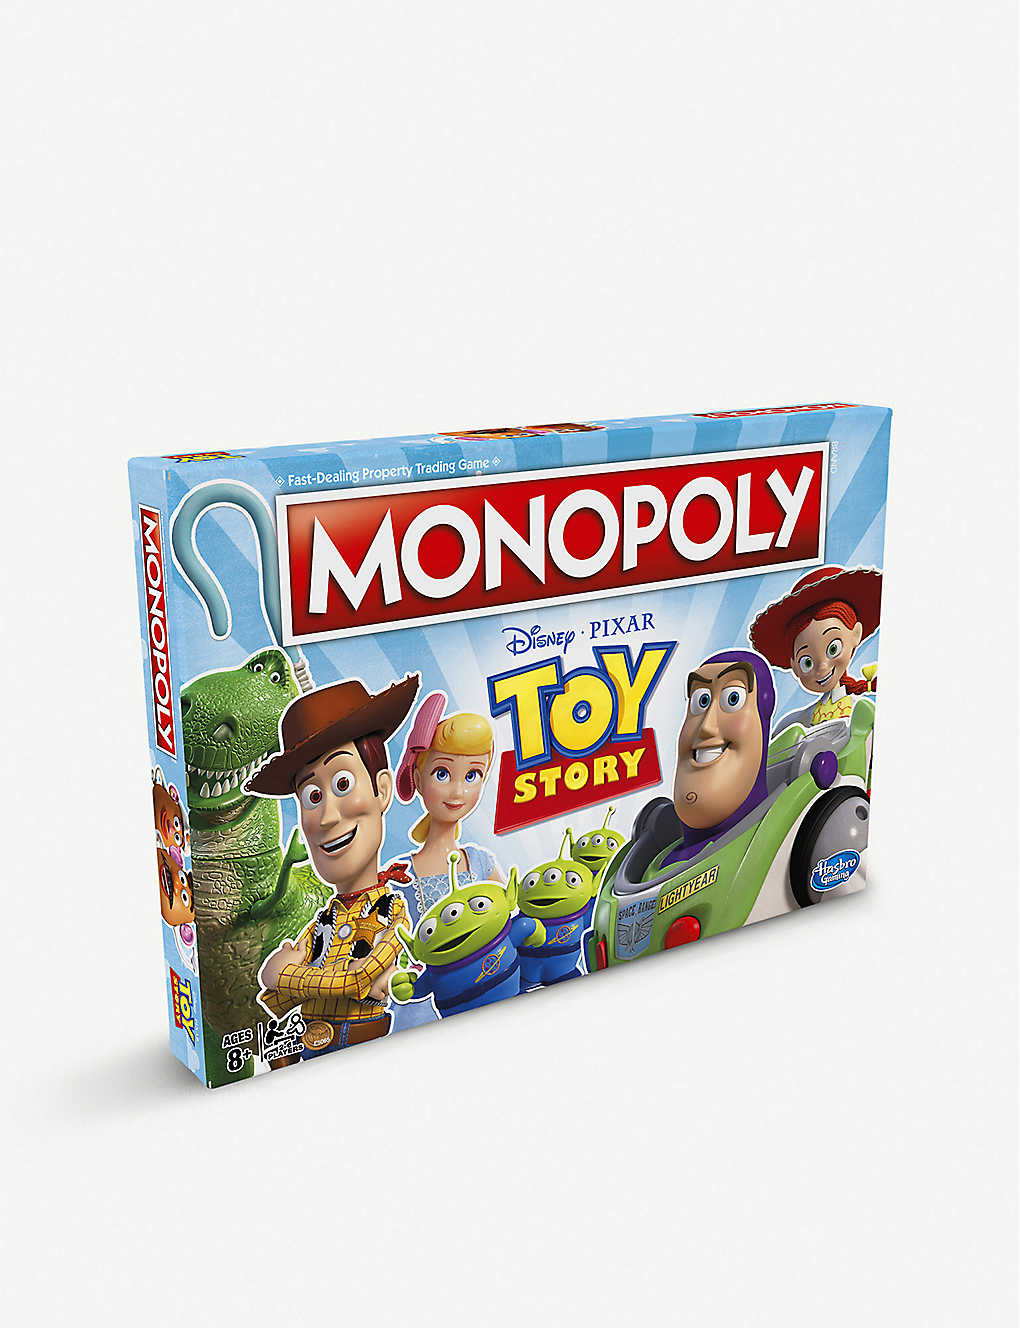 BOARD GAMES: Disney Pixar Toy Story limited edition board game